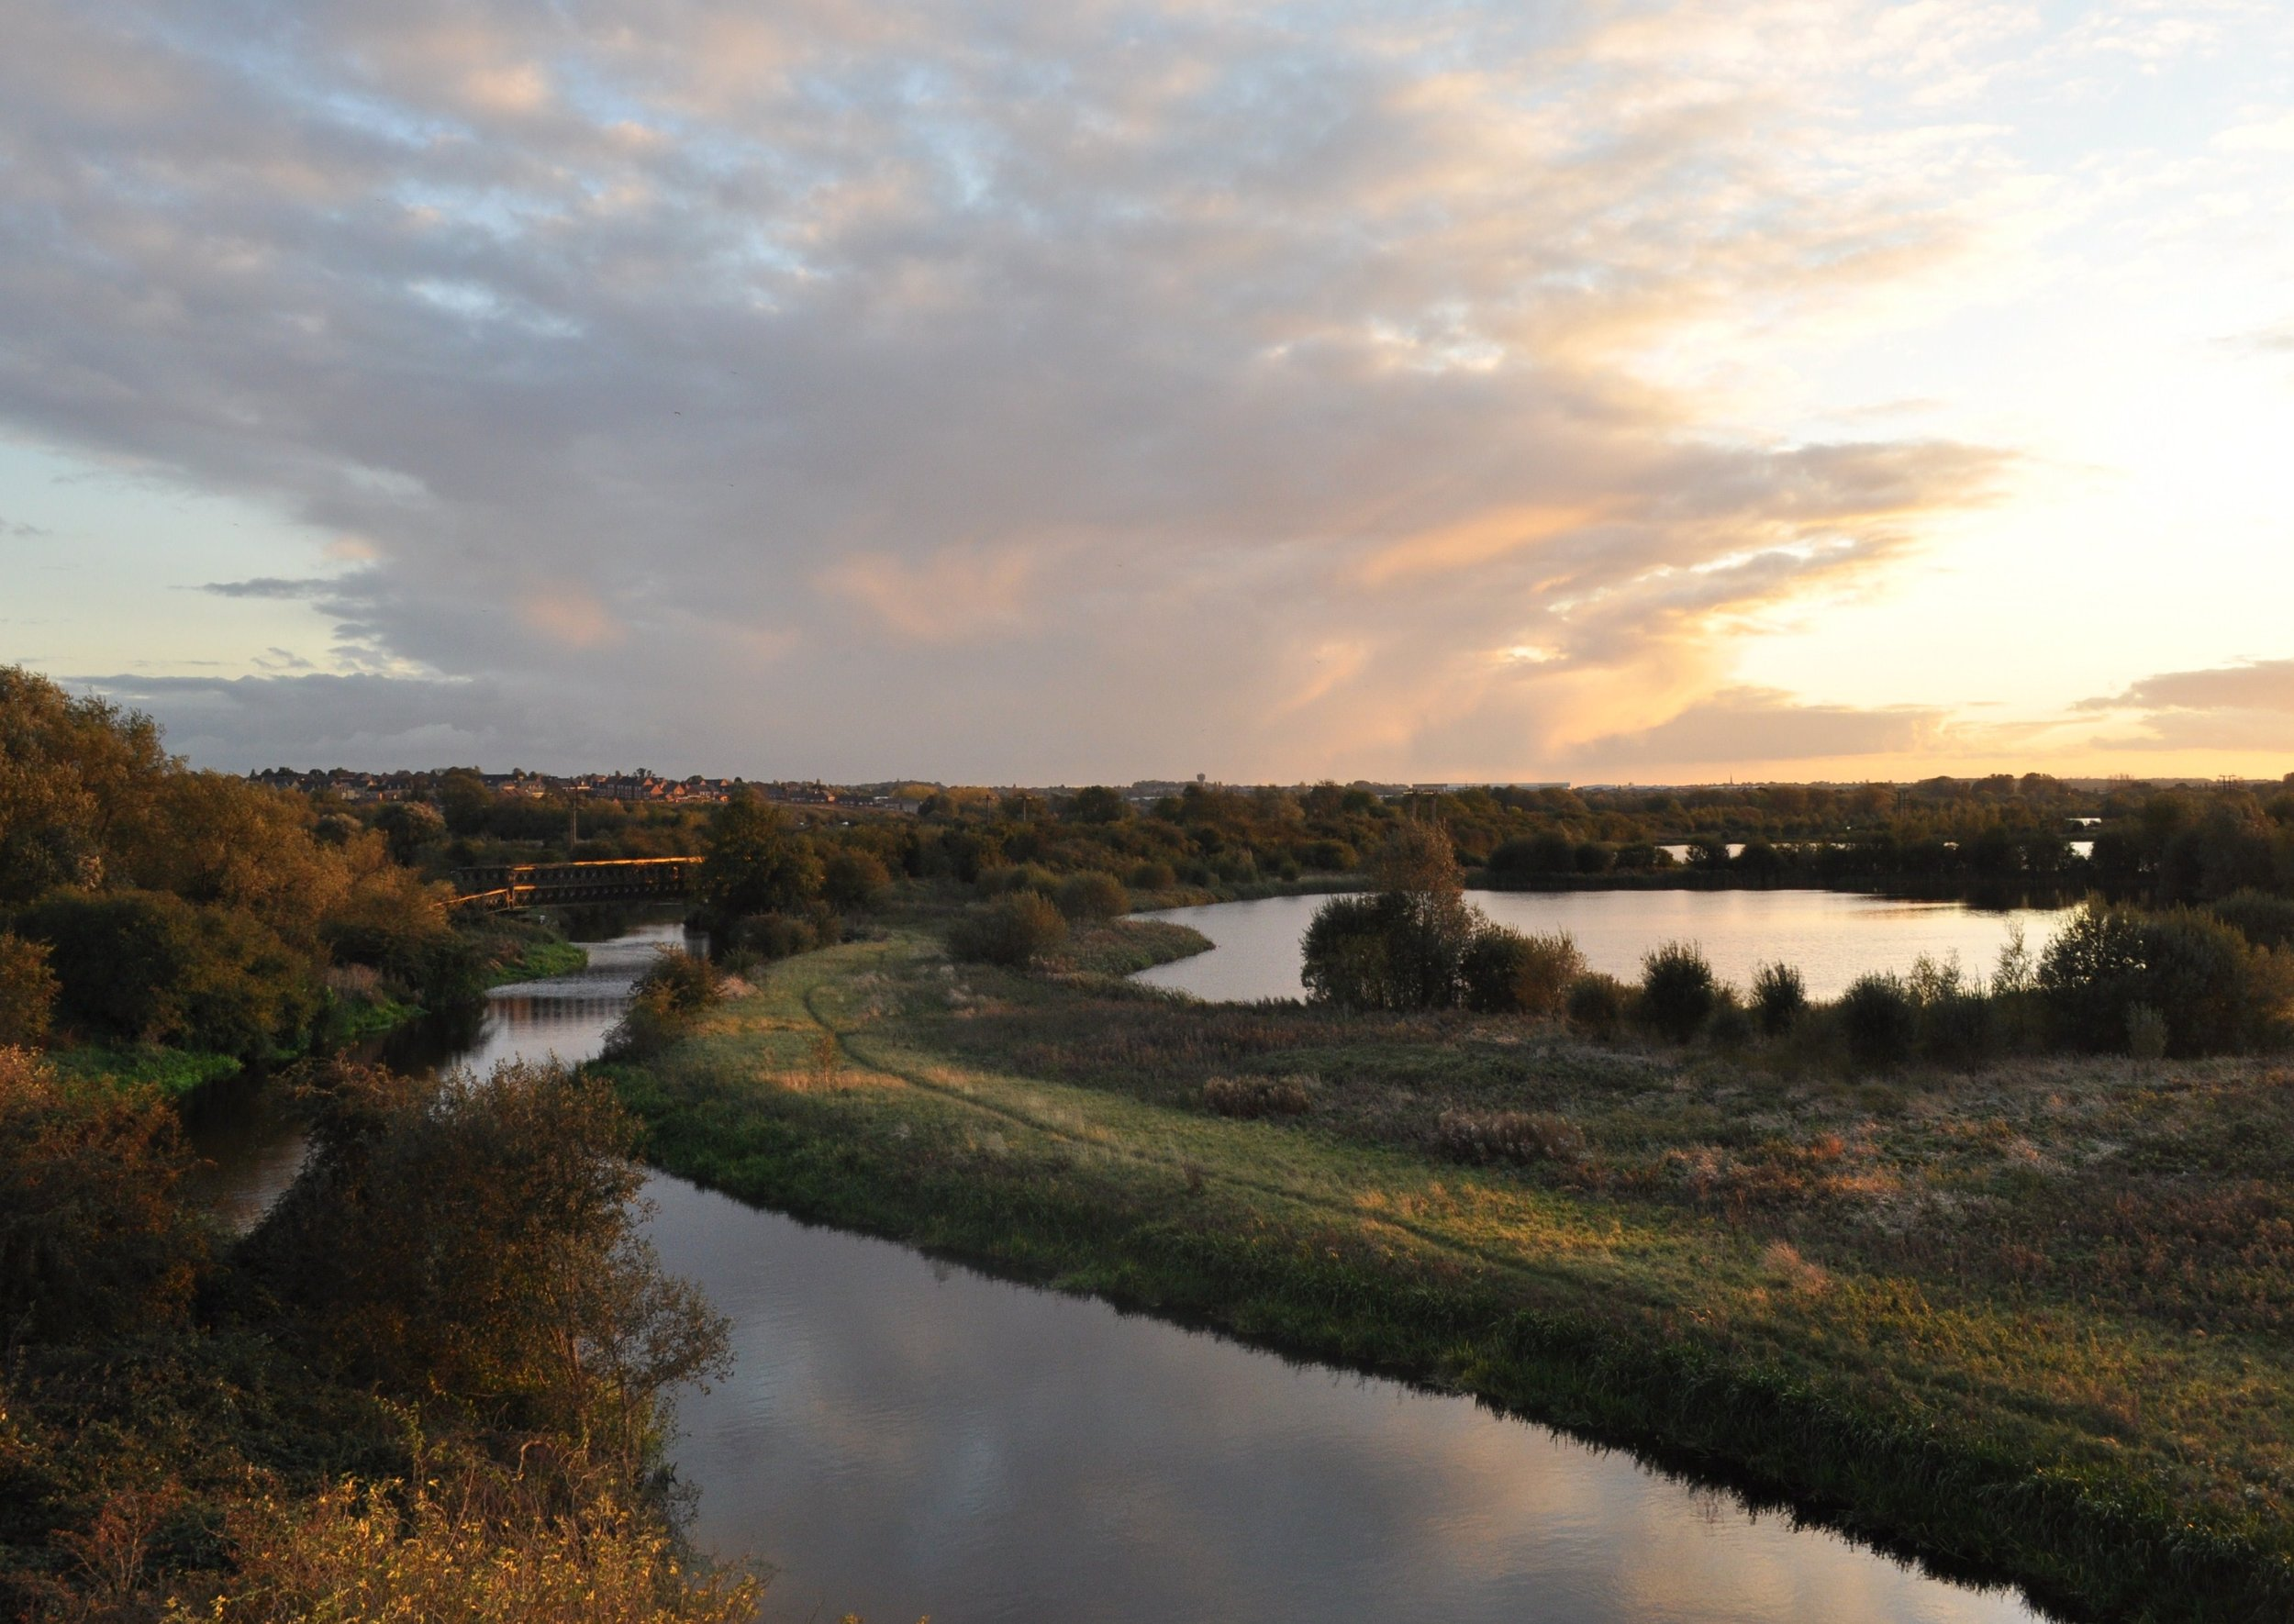 The Nene Valley landscape at sunset (John Abbott)